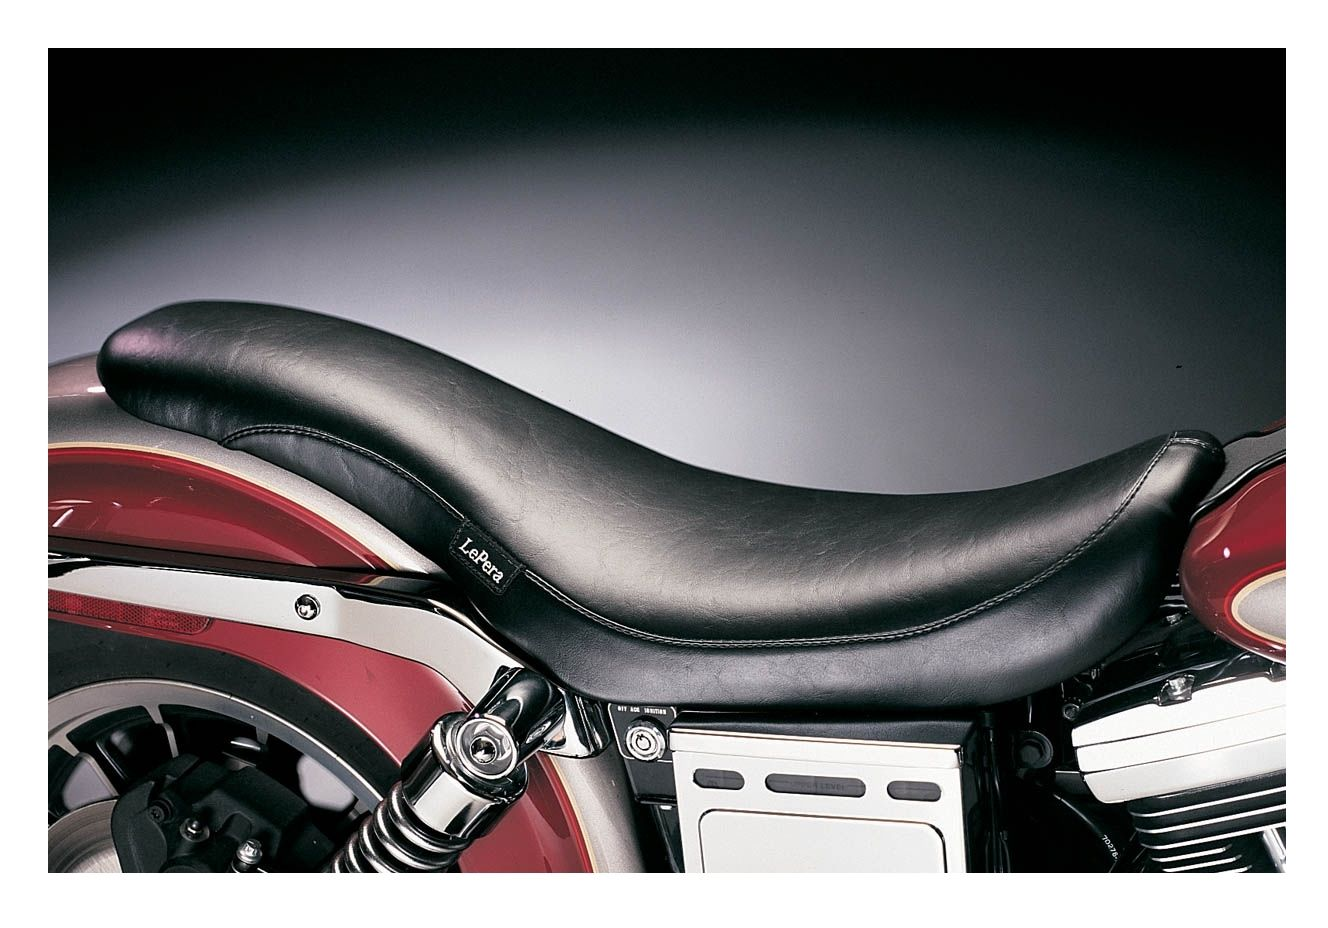 Le Pera King Cobra Seat For Harley Dyna 2006 2017 10 3560 Off 1996 Fxds Wiring Diagram Revzilla